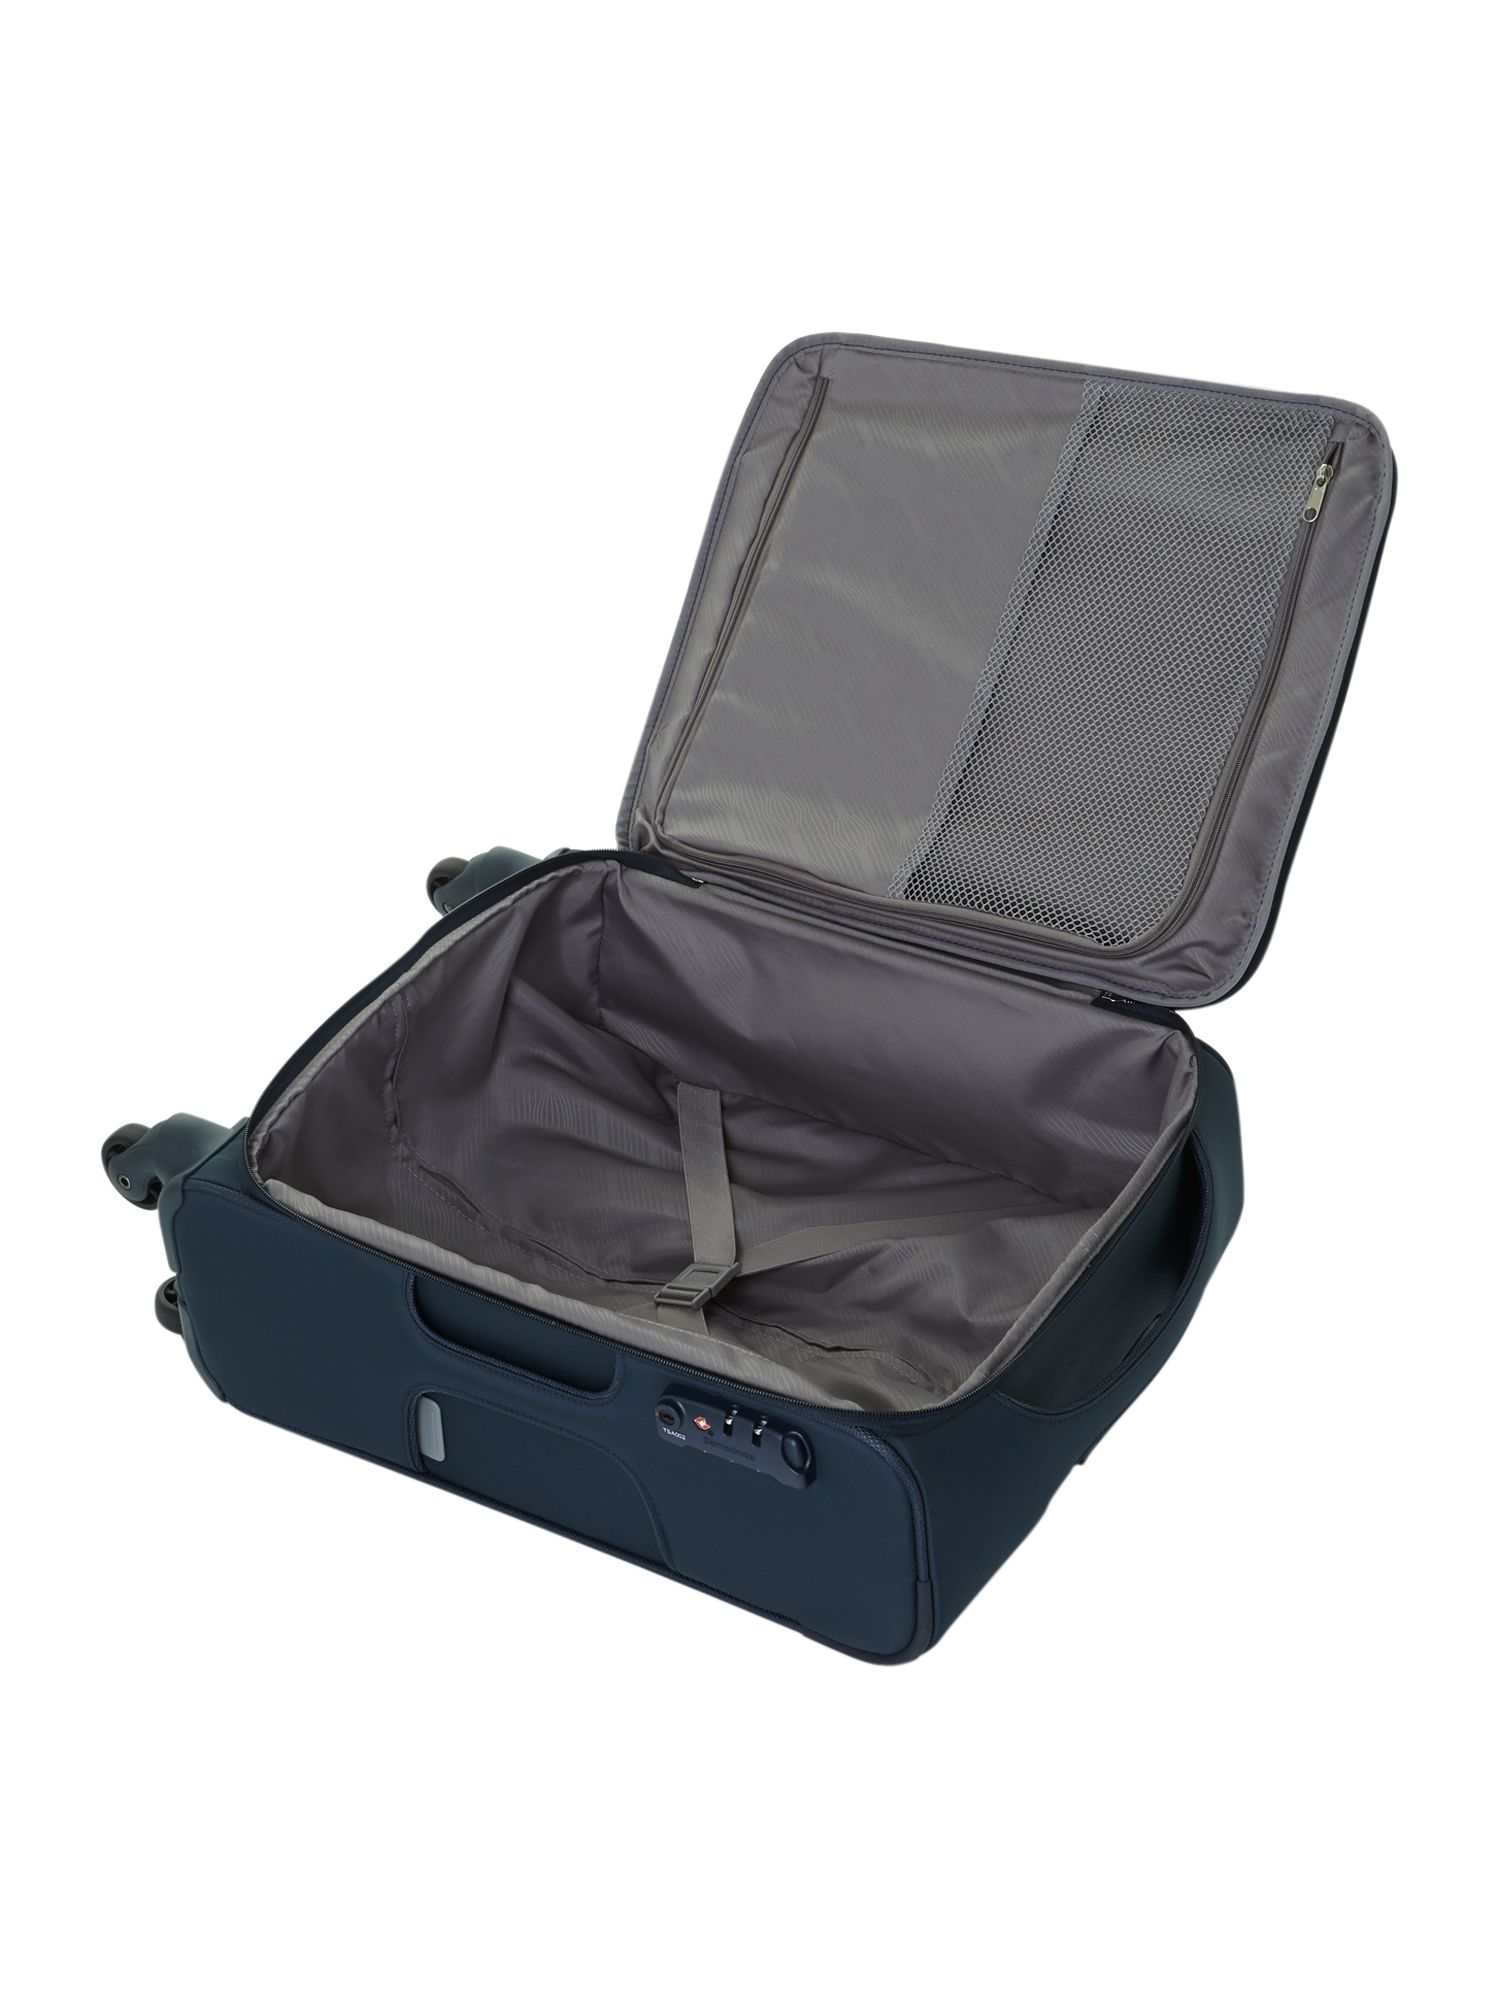 New B-Lite 4-wheel cabin suitcase